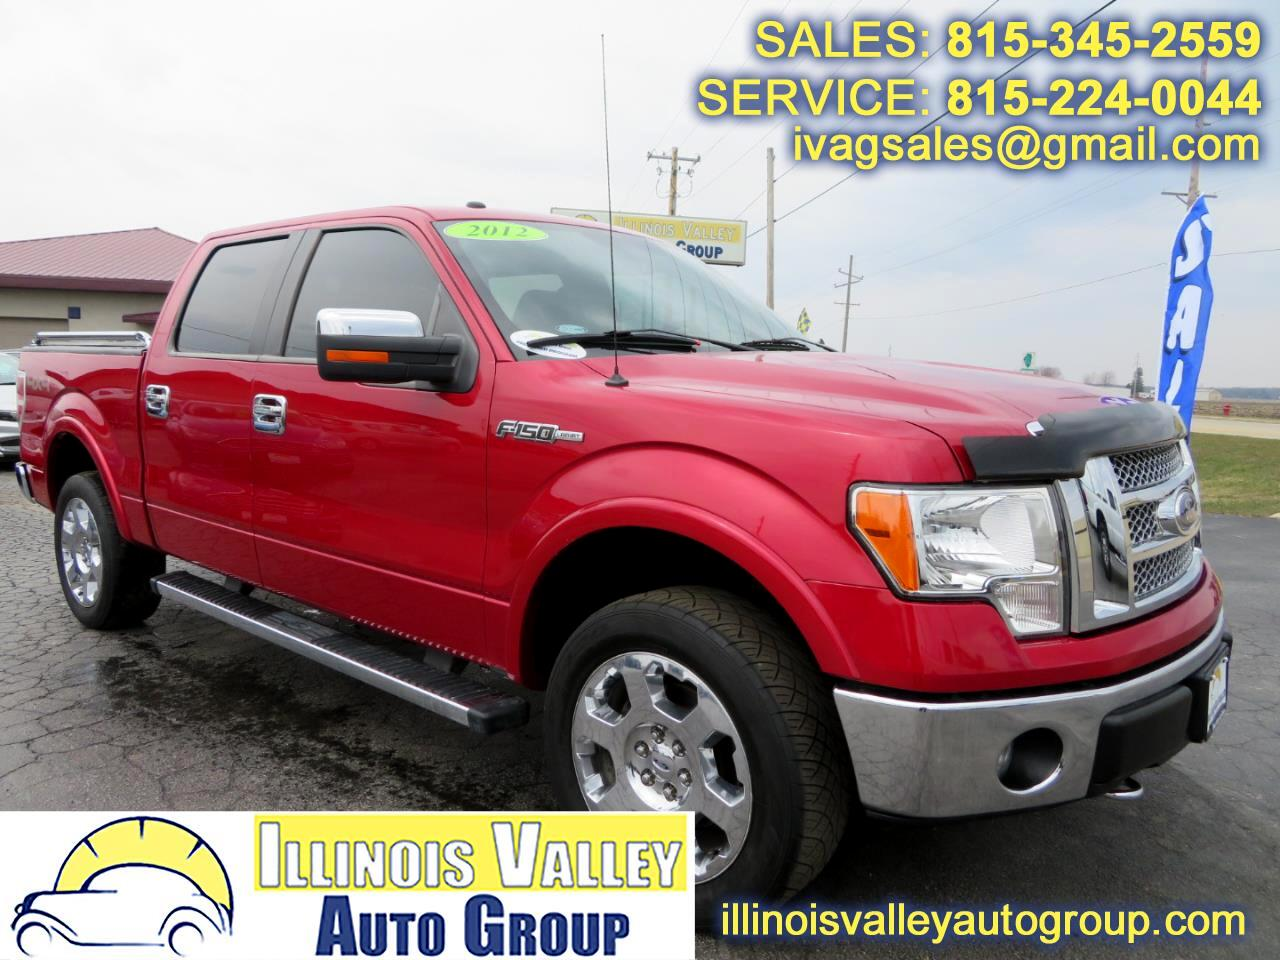 2012 Ford F-150 Lariat SuperCrew Short Bed 4WD